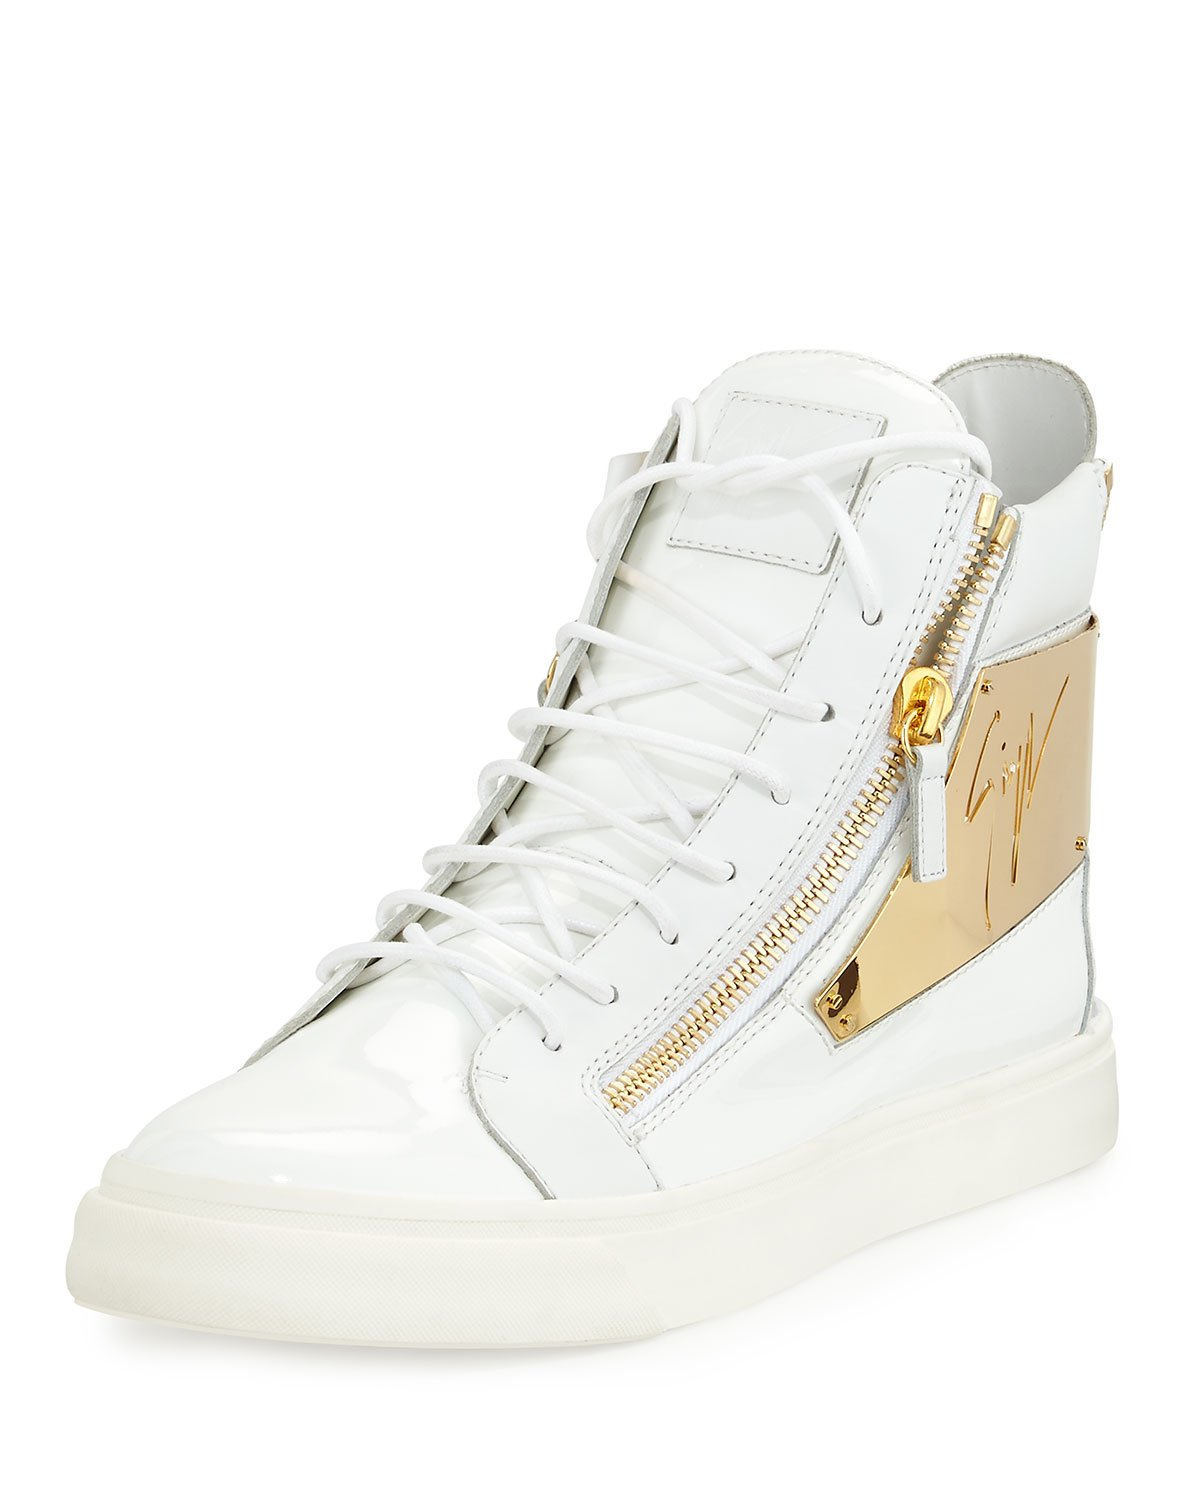 62345a5ab9032 Lyst - Giuseppe Zanotti Men s Patent Logo-plate High-top Sneaker in ...